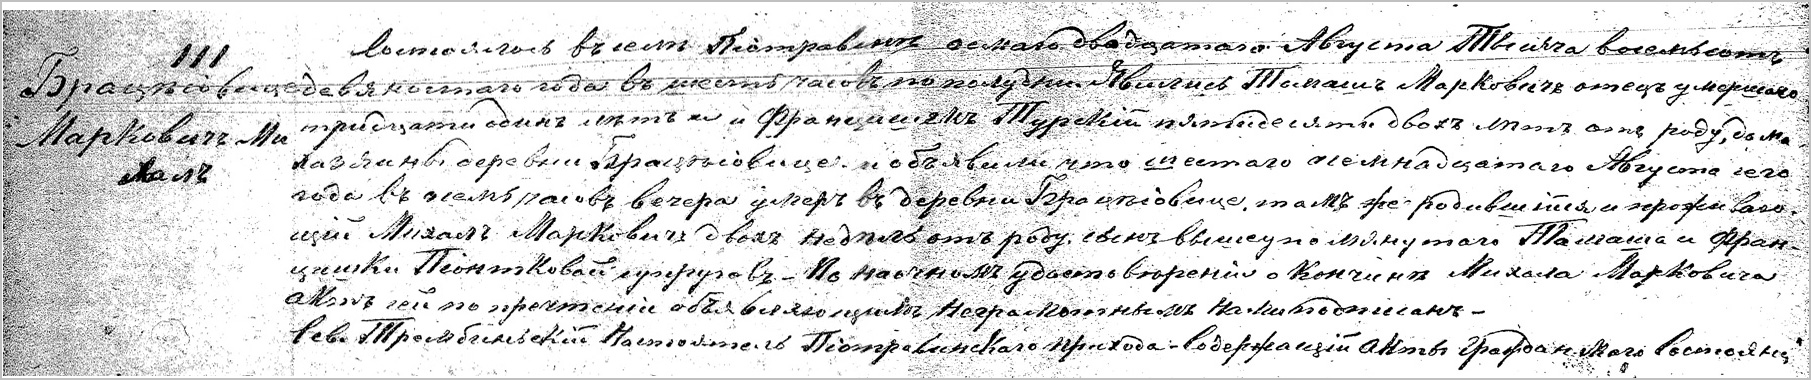 Death Record for Michał Markiewicz - 1890